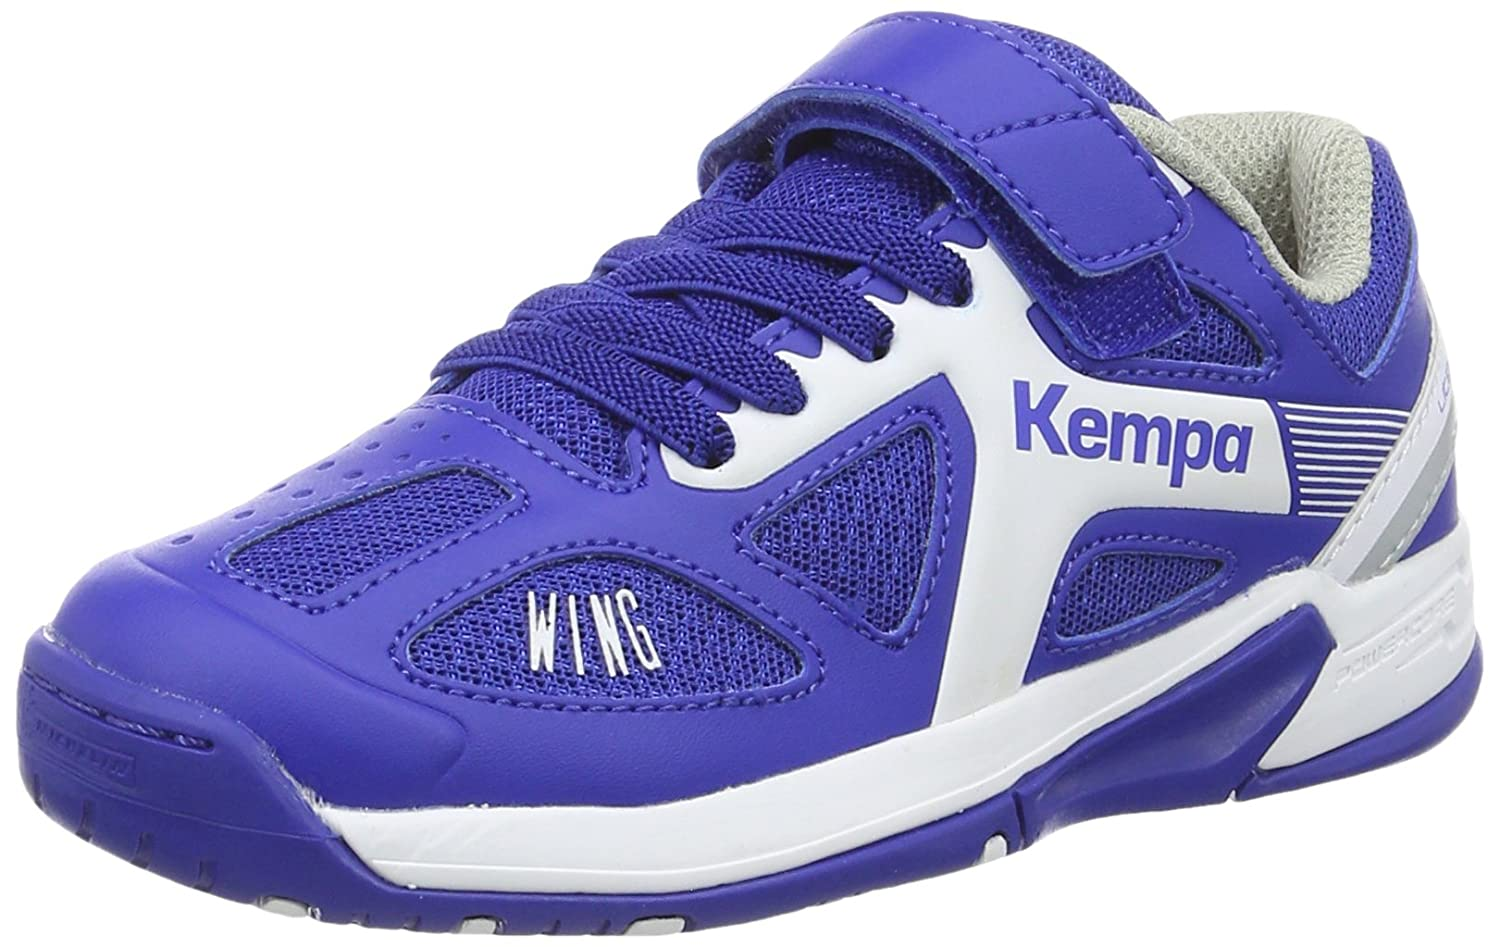 Kempa Fly High Wing Junior, Zapatillas de Balonmano Unisex Adulto 2008495